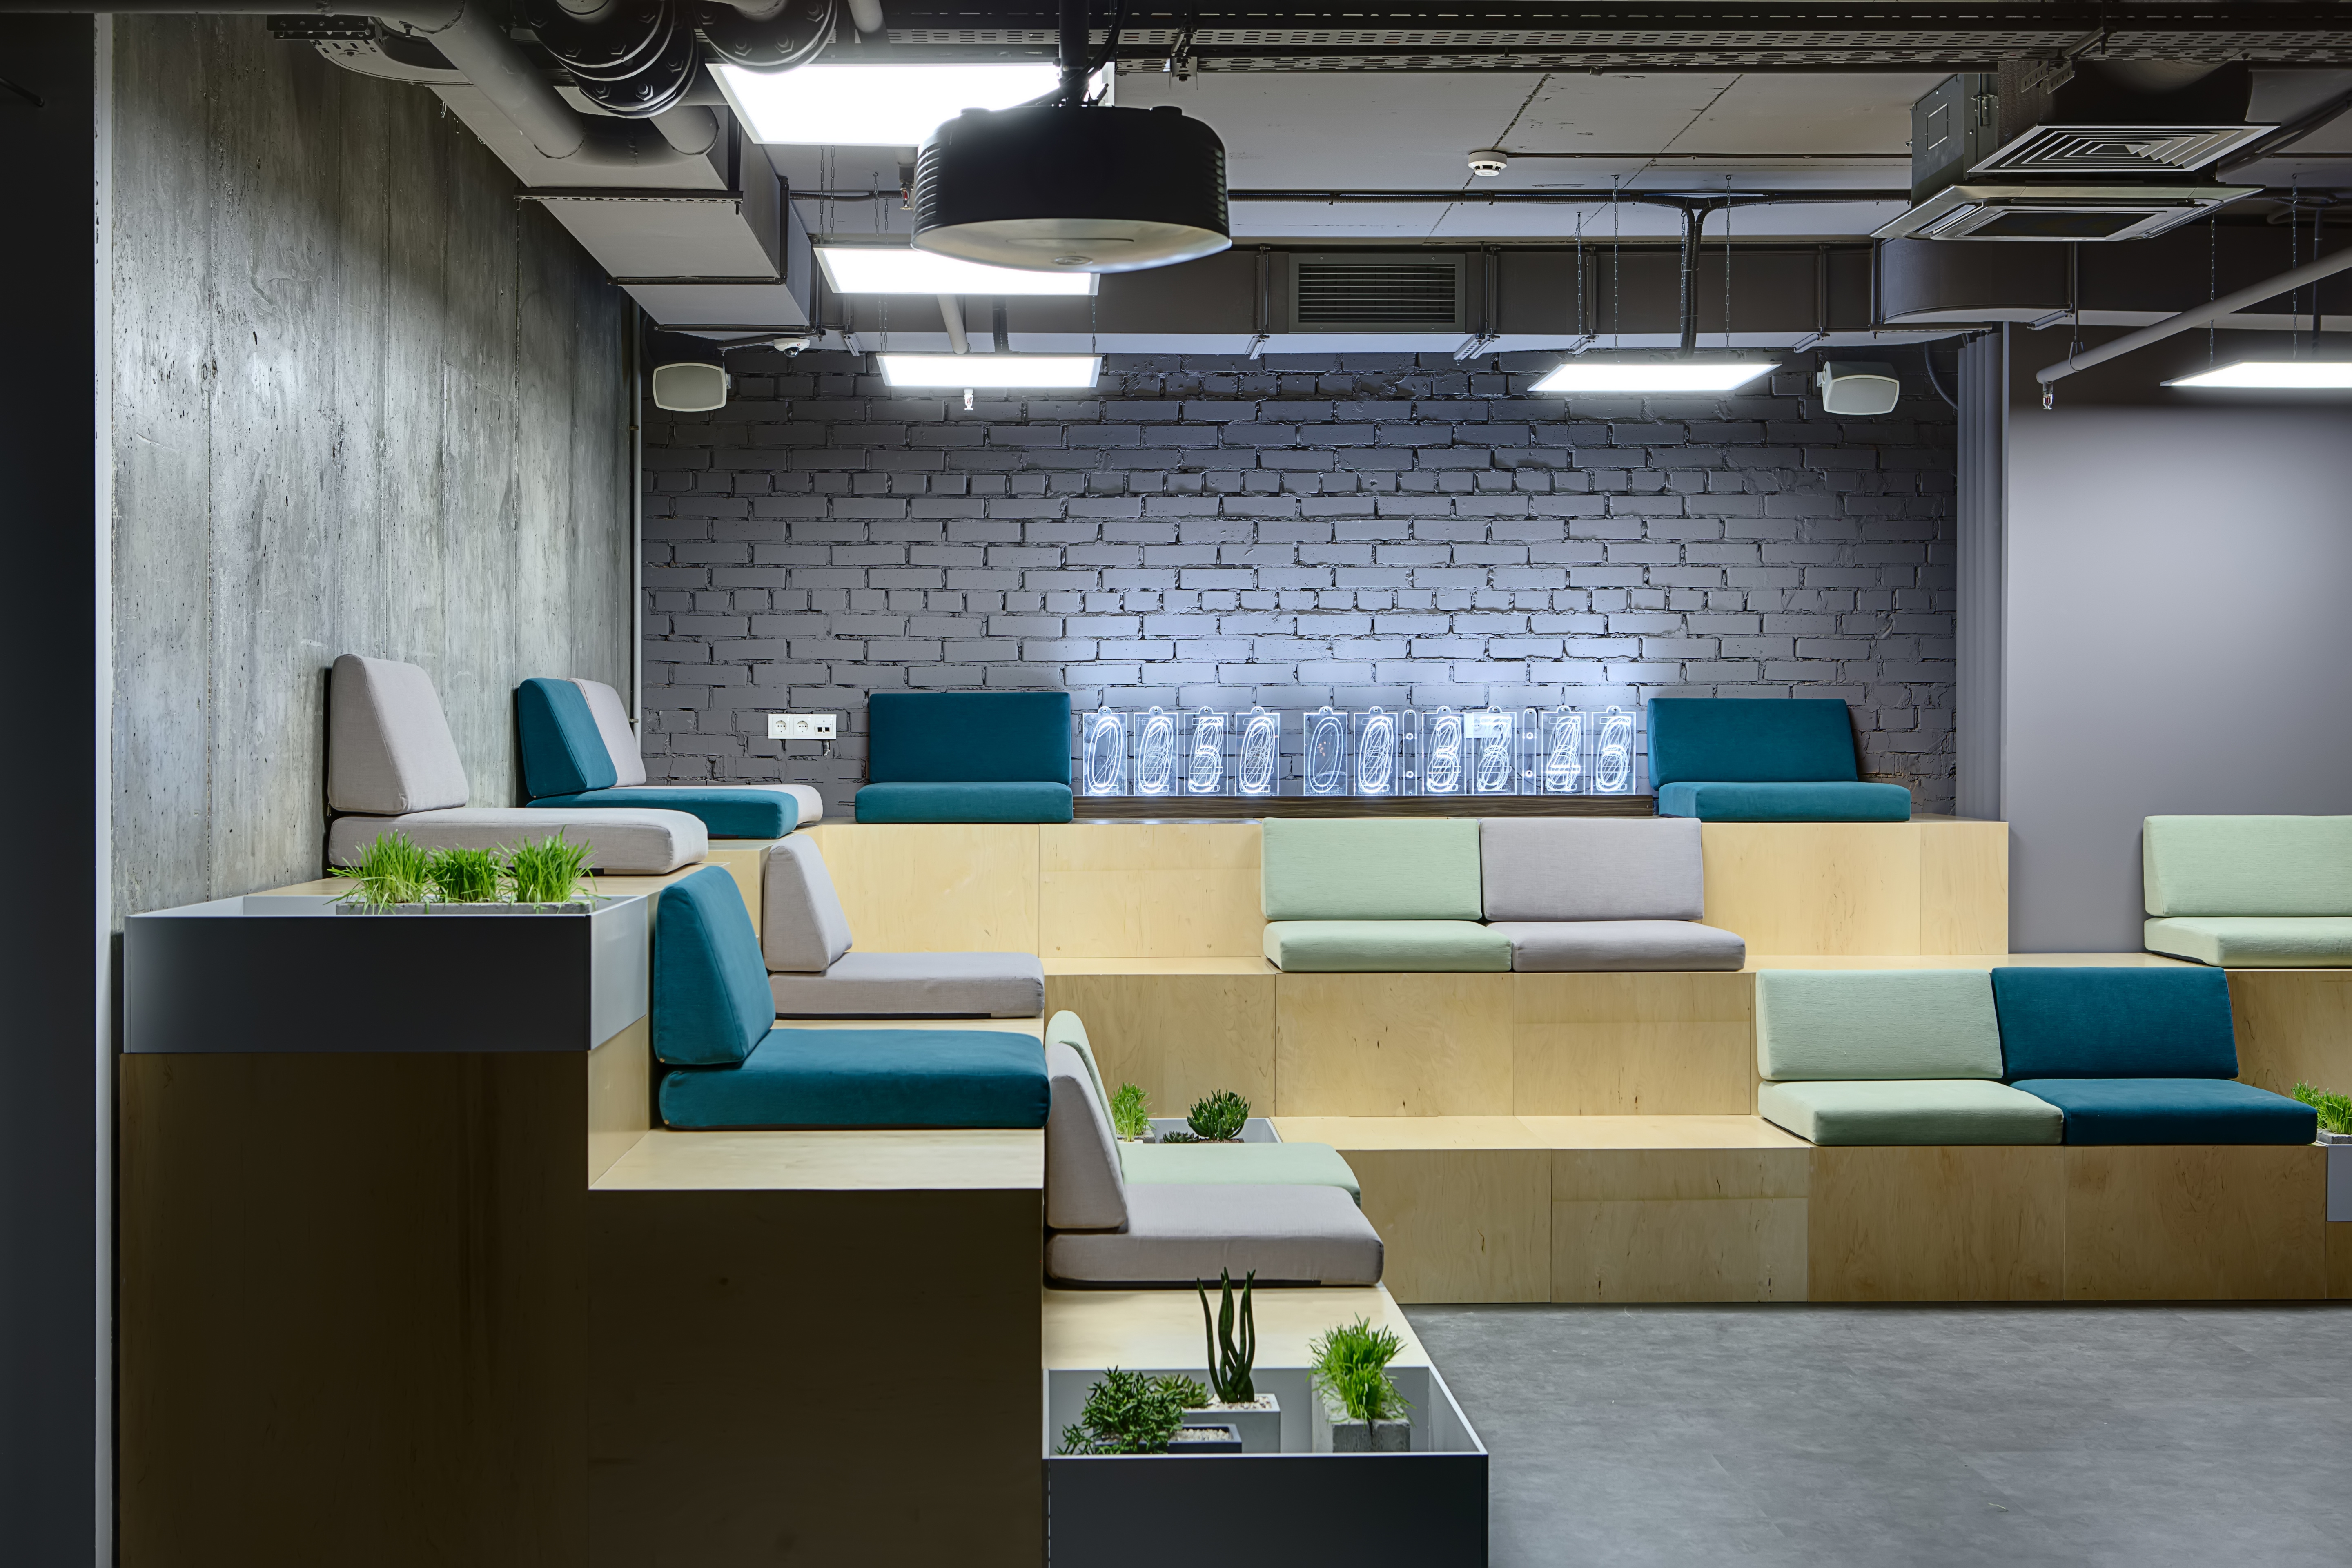 The rise of the breakout area